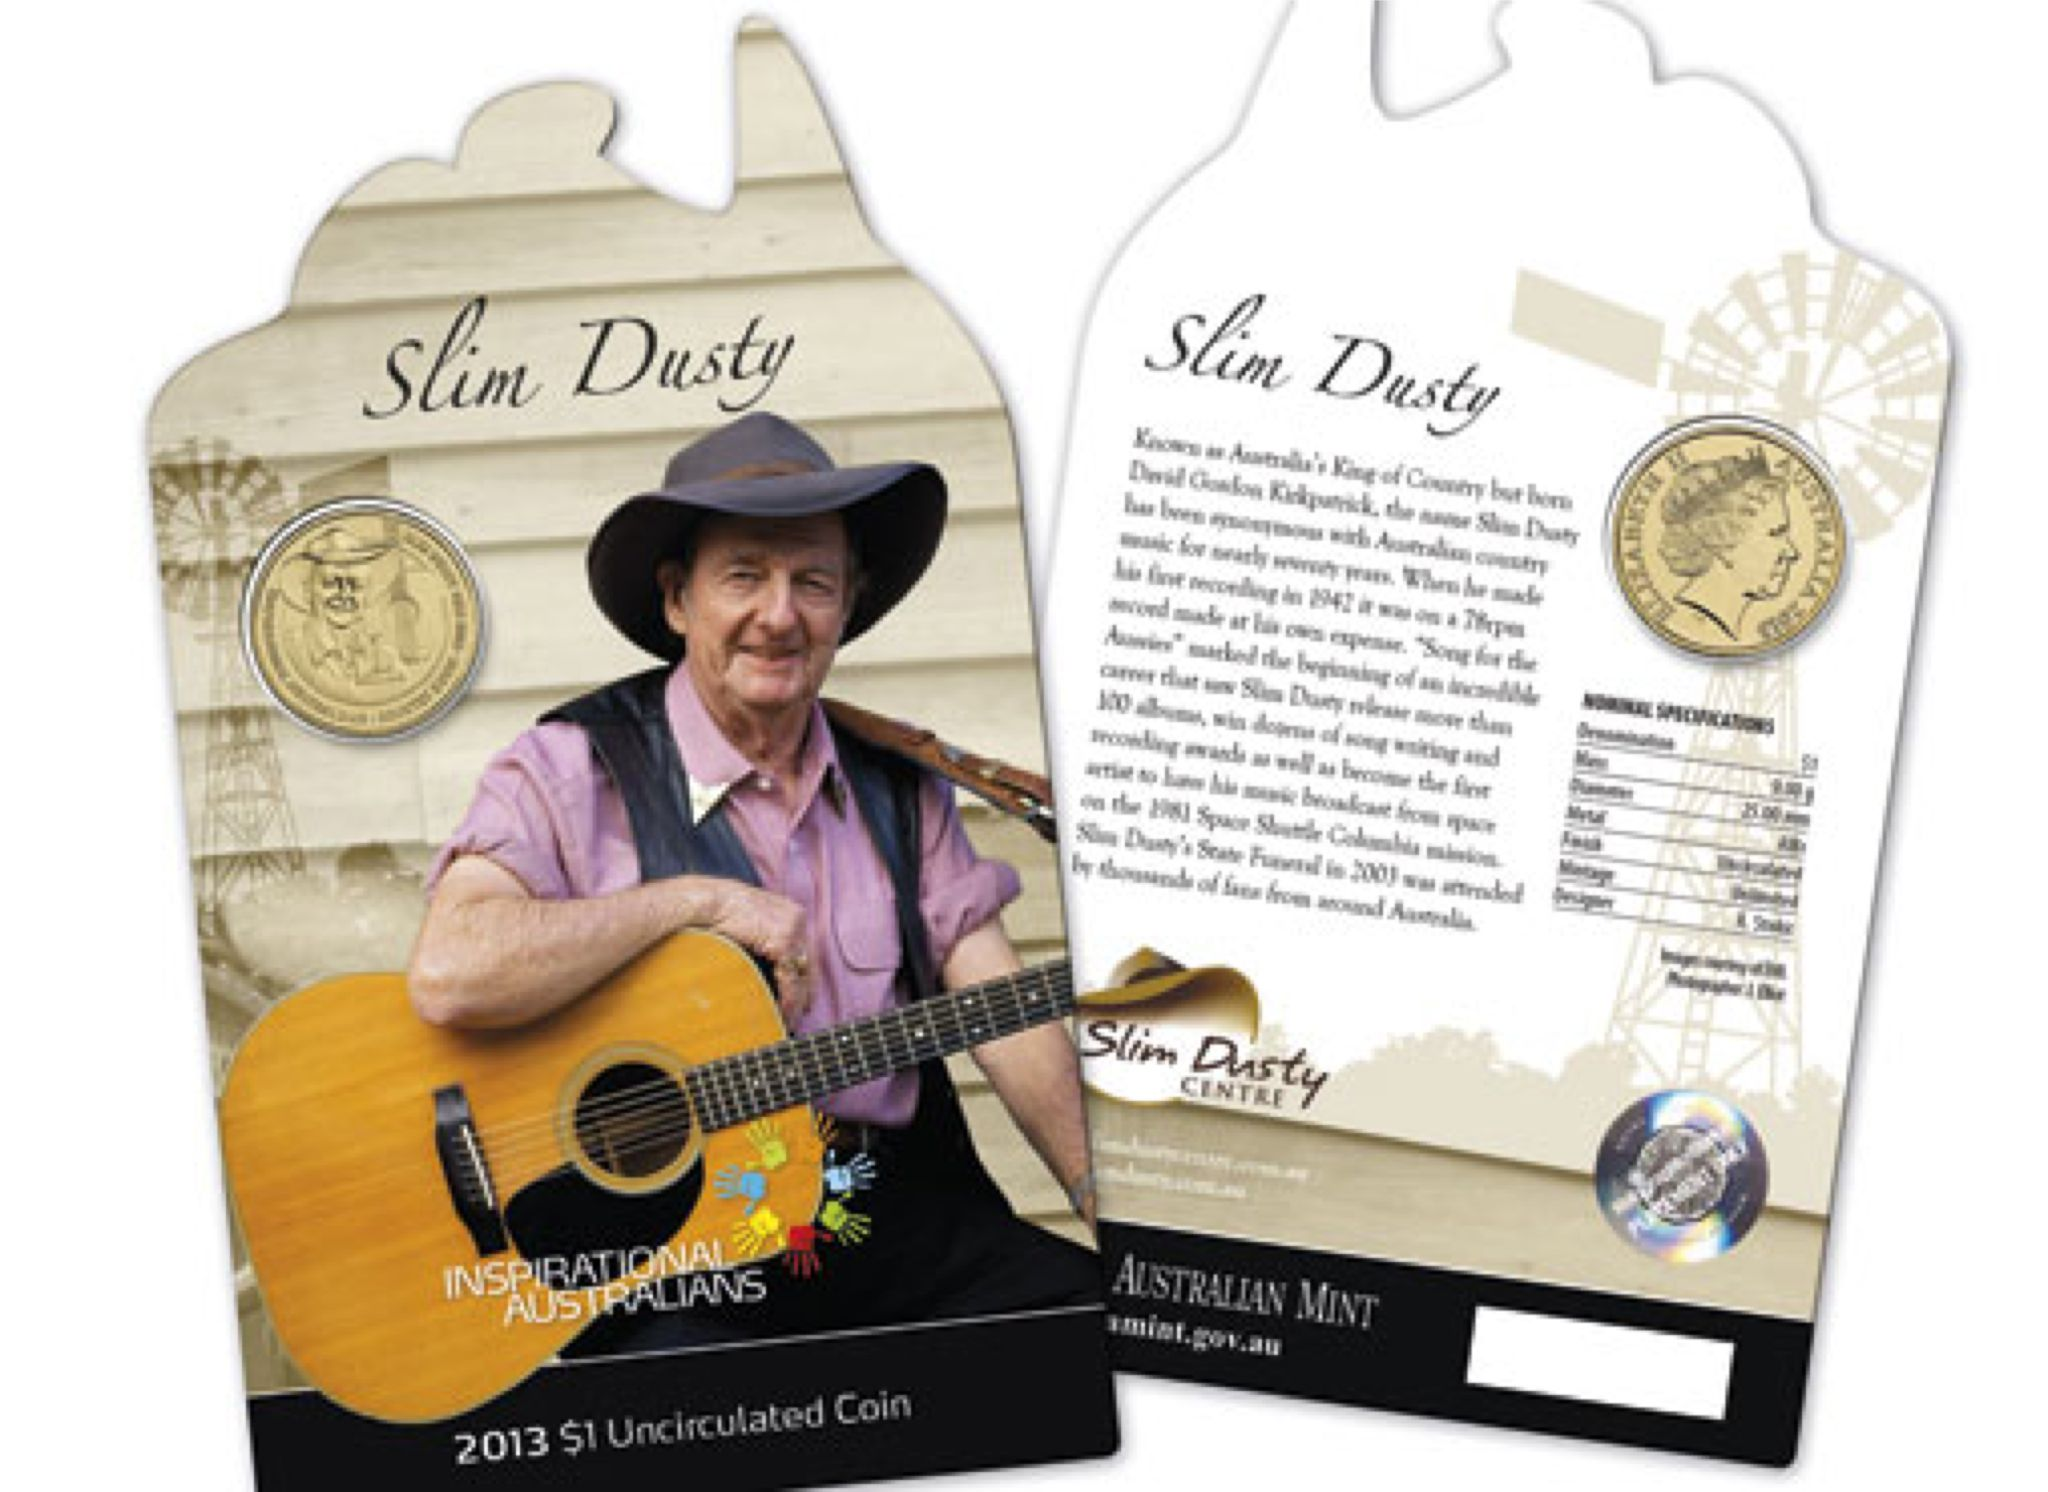 2013 $1 Uncirculated Coin Inspirational Australians - Slim Dusty Coin - $1 (2013) front image (front cover)